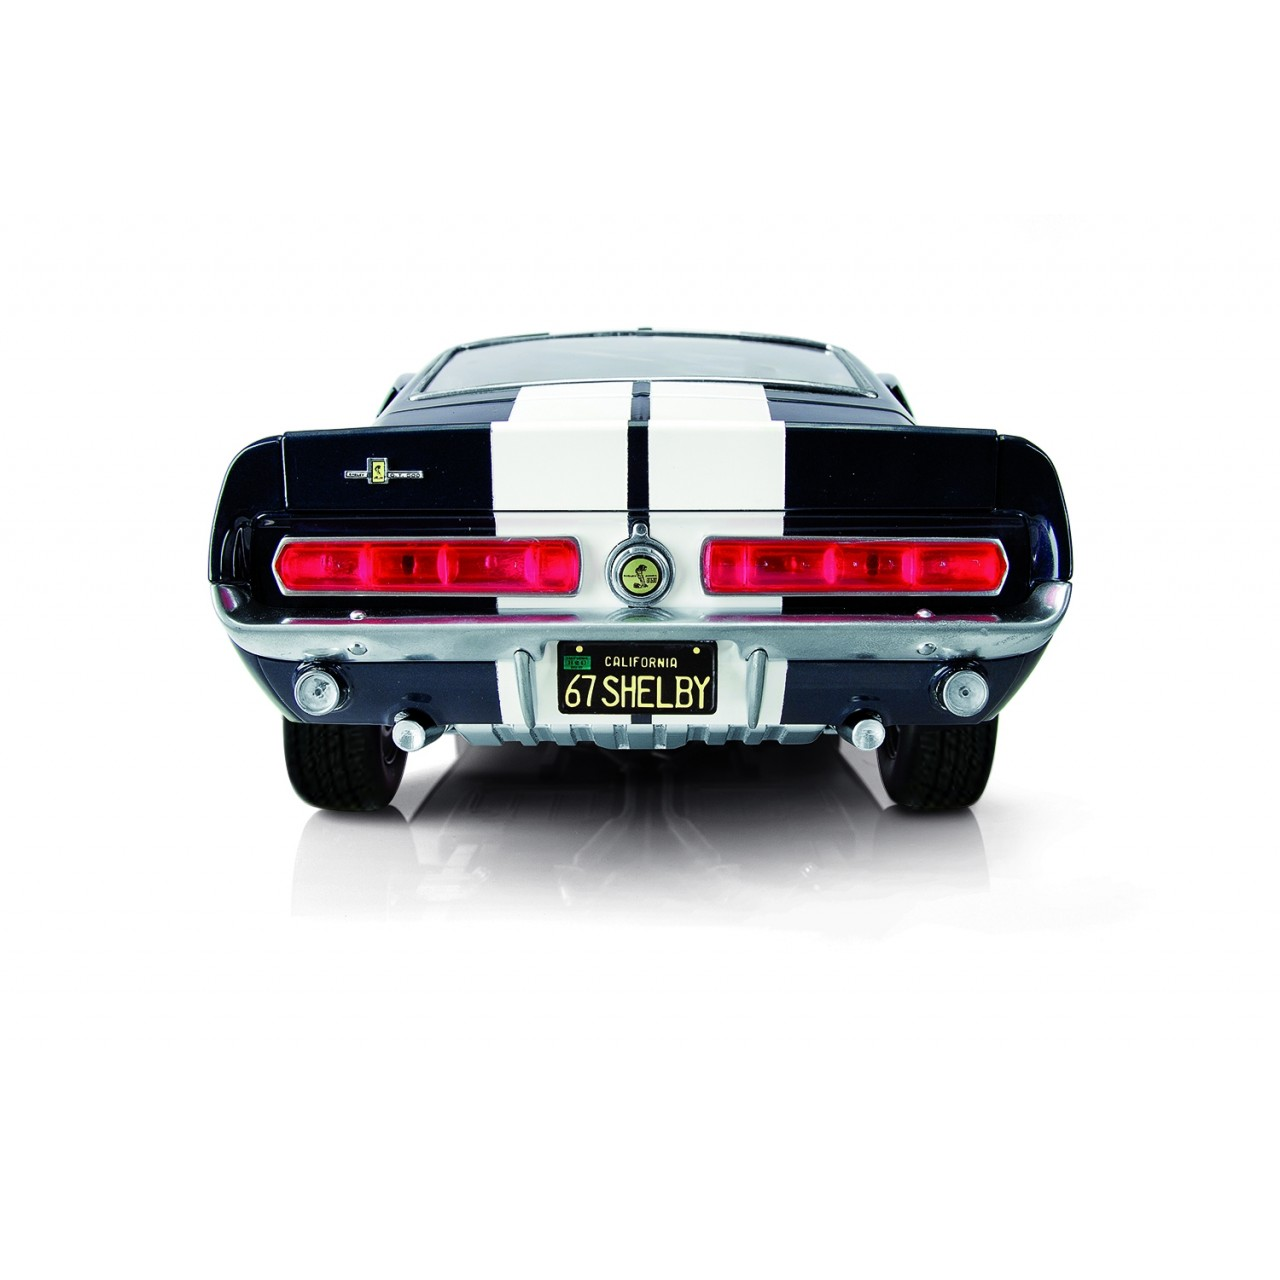 Ford shelby mustang gt 500 i échelle 1 8